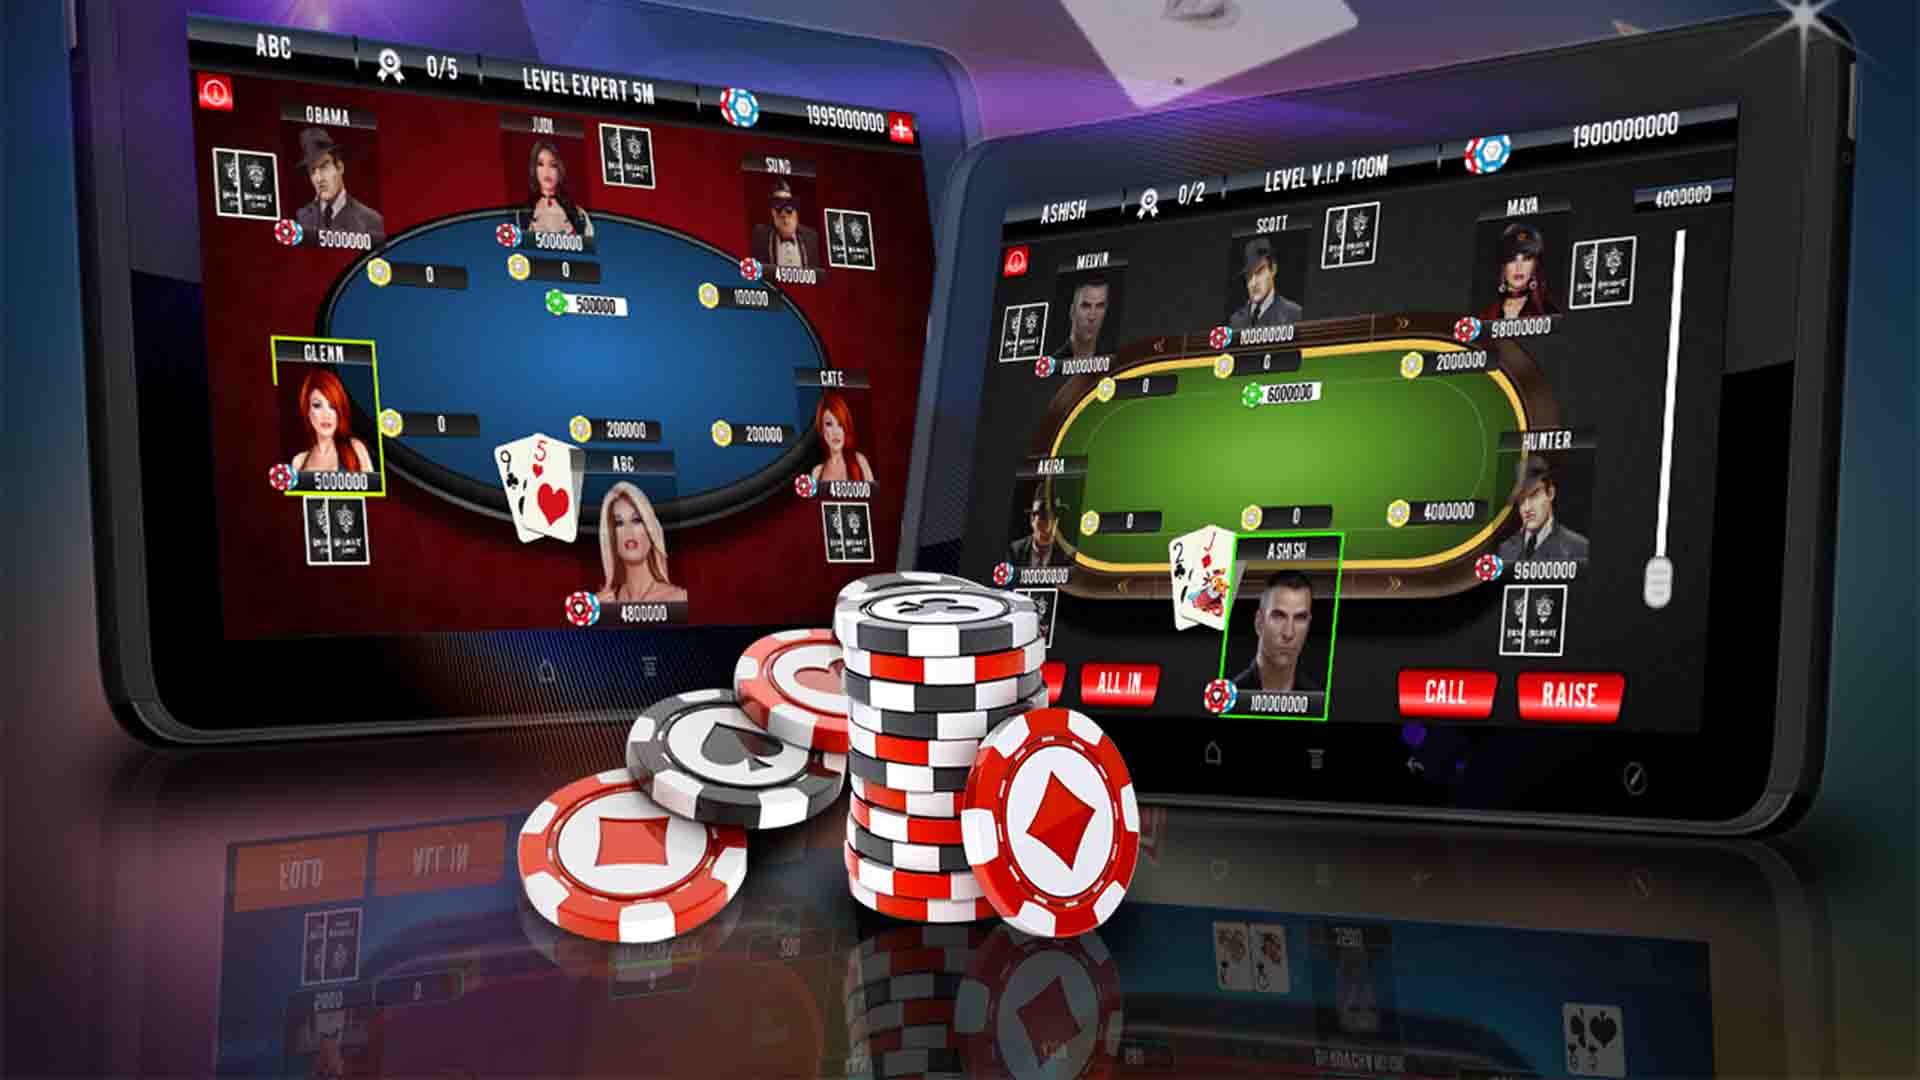 What are the things that you should know for registration at online casino?